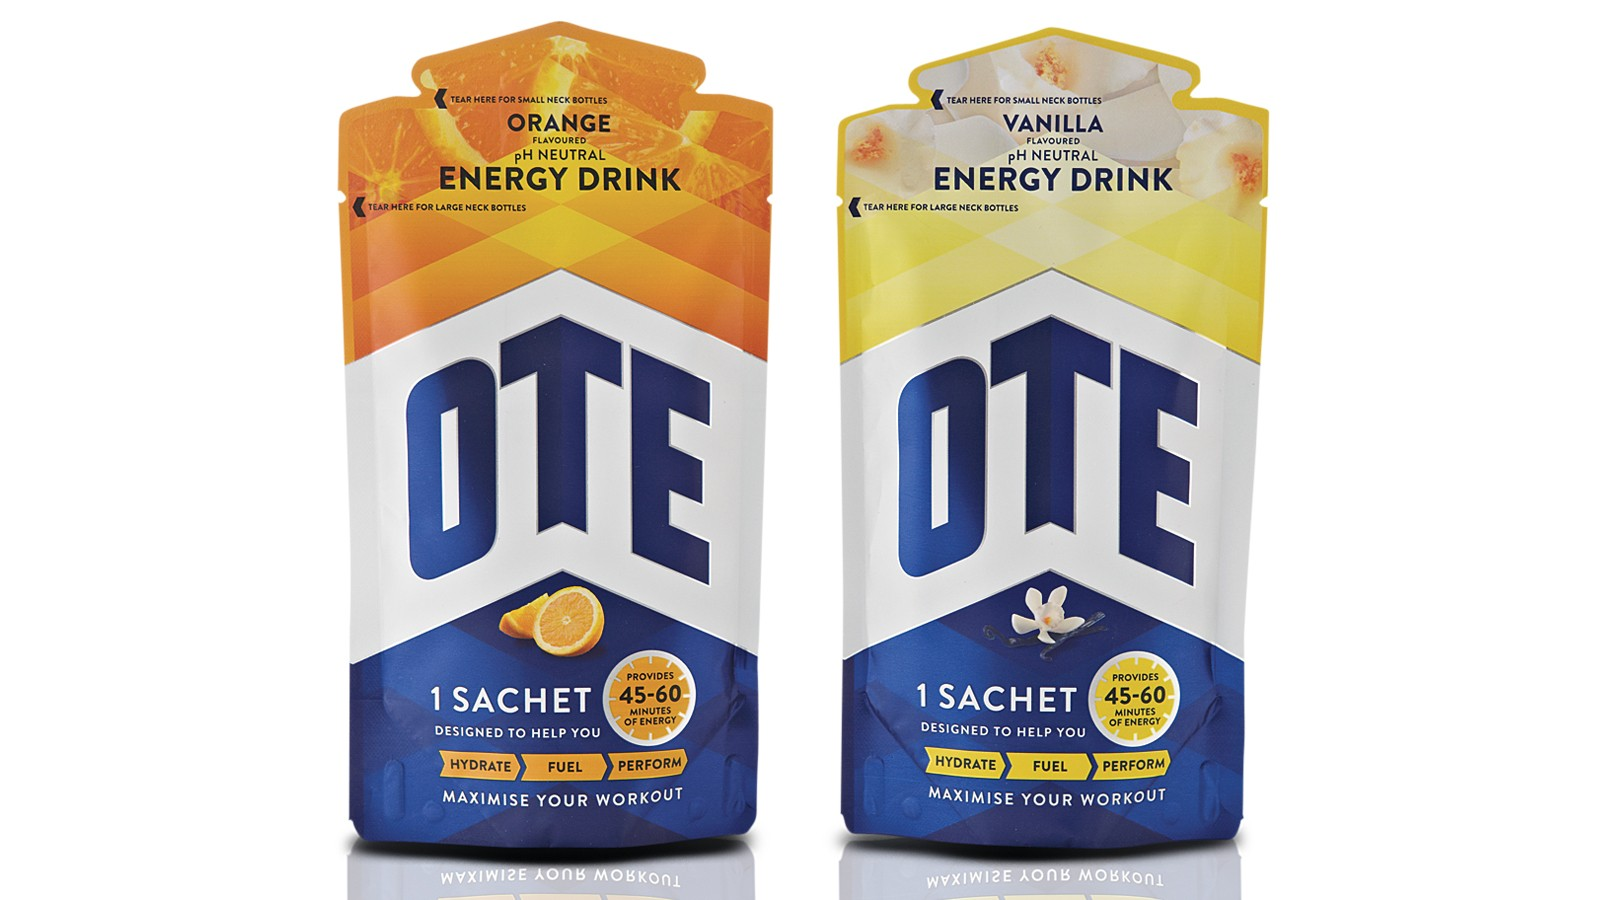 The OTE sachets have smaller openings at the top and wide openings below this